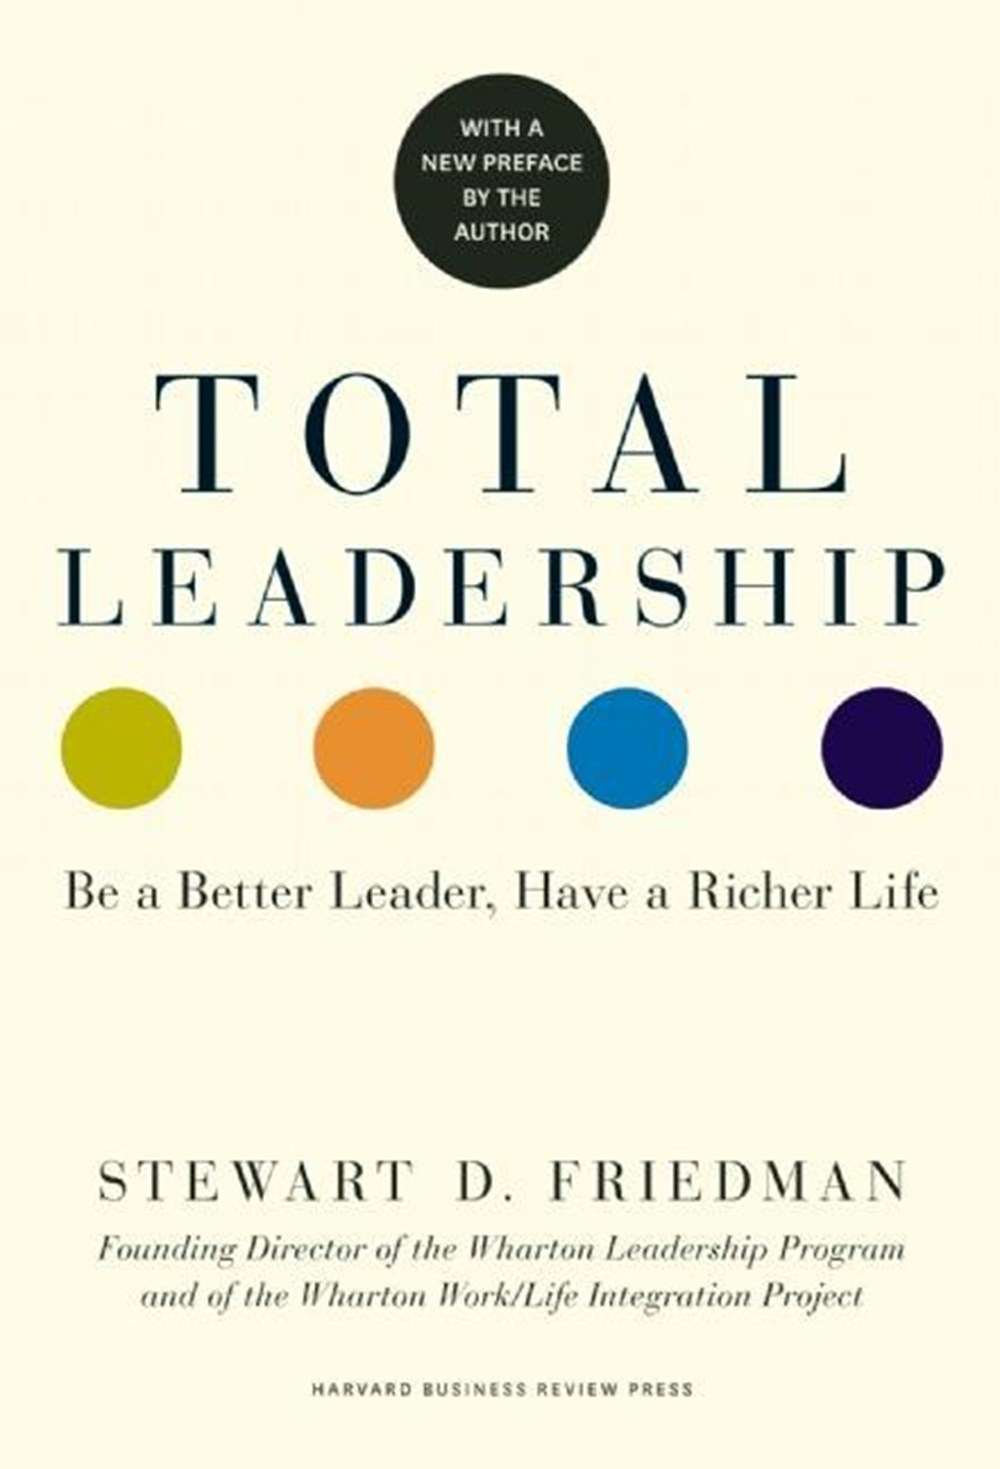 Total Leadership Be a Better Leader, Have a Richer Life (with New Preface)